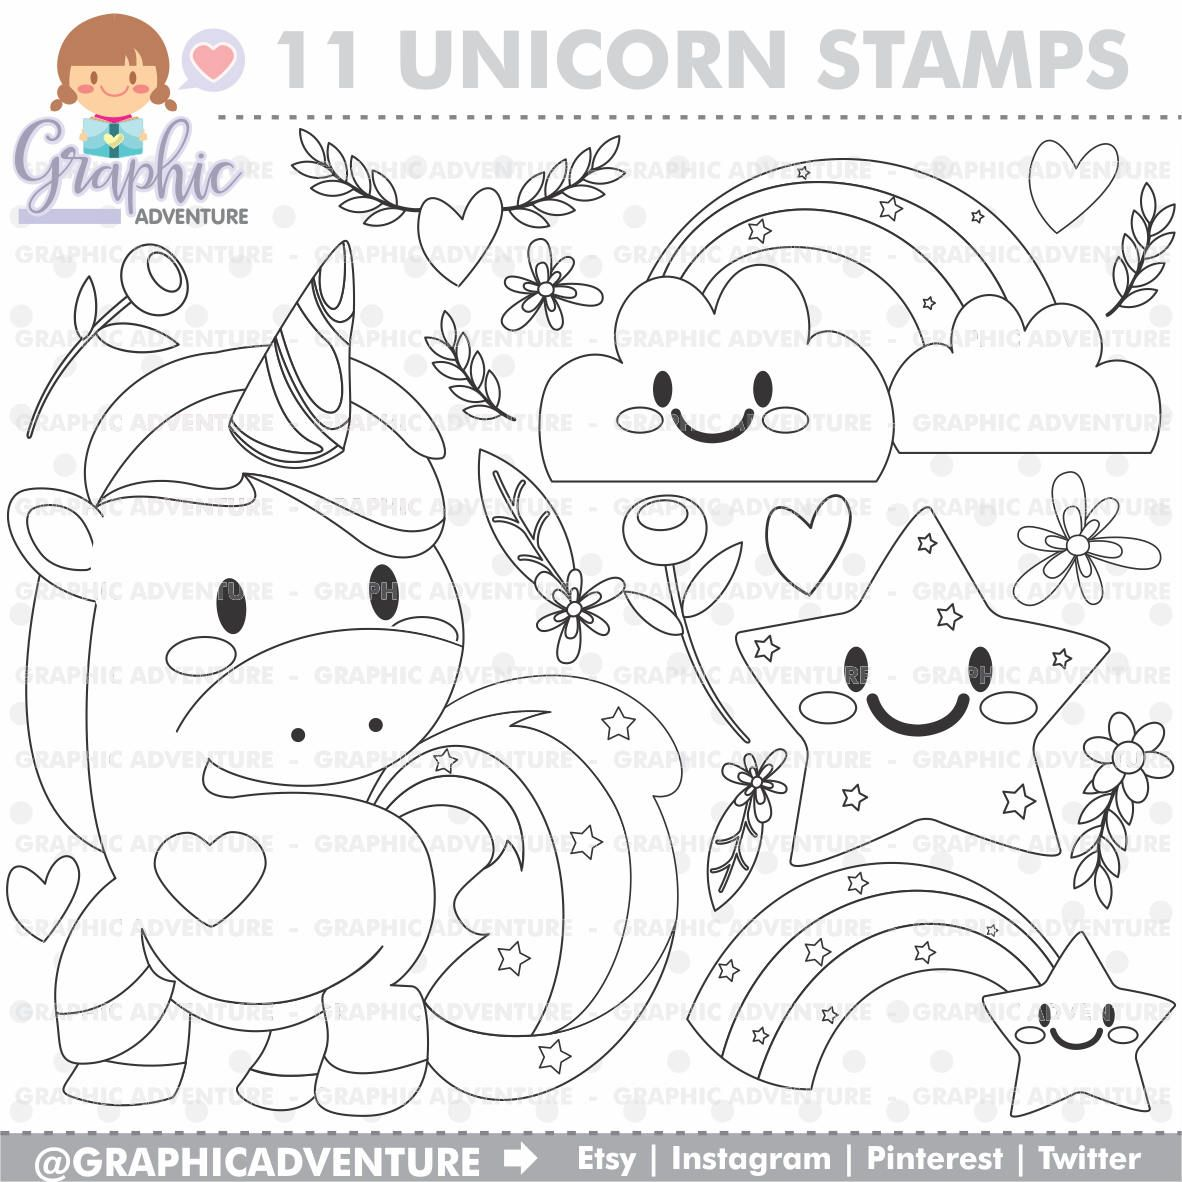 Unicorn stamp commercial use digi stamp digital image party digistamp unicorn coloring page unicorn clipart unicorn graphics graphic